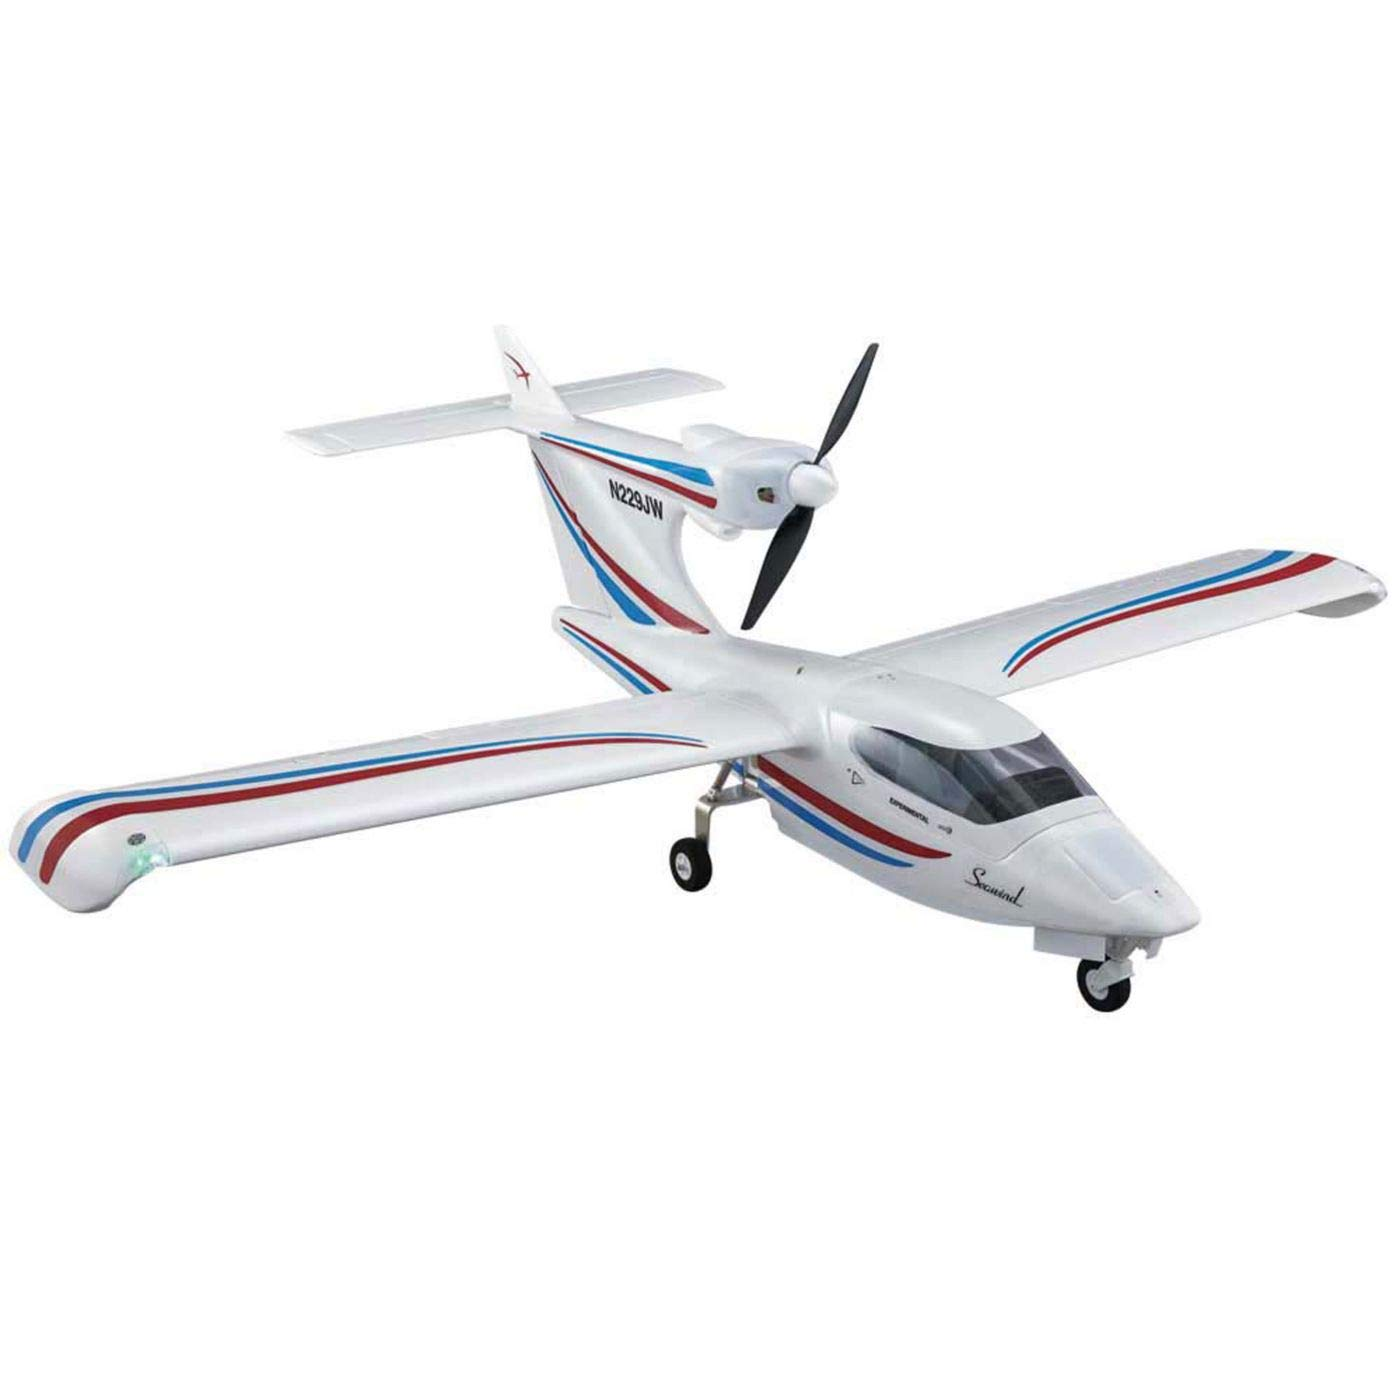 Flyzone Seawind Brushless Electric Powered Receiver Ready 56.5 Inches Wingspan Amphibious Model Seaplane